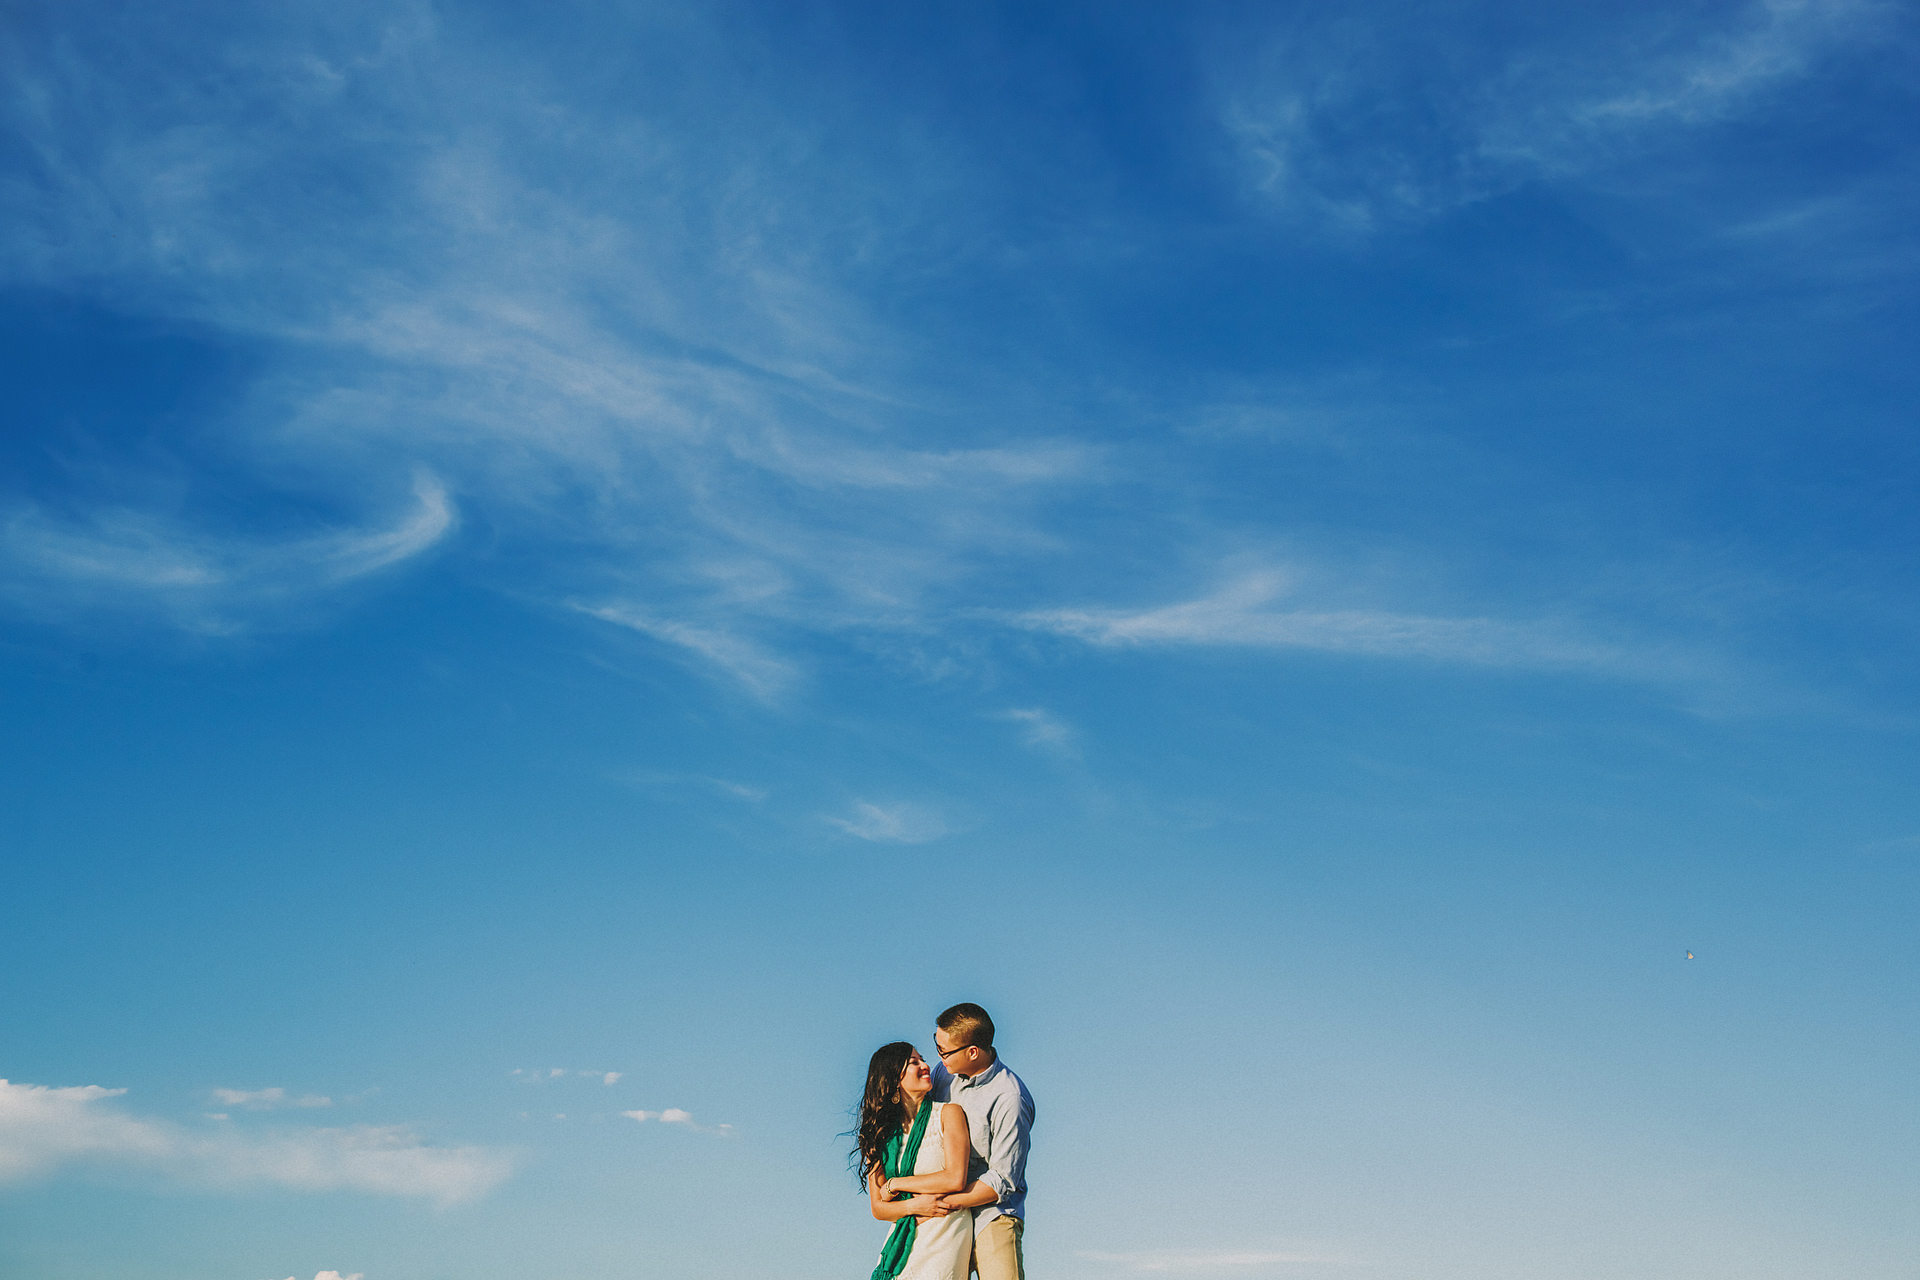 Lubbock-wedding-photographers-texas-austin-dallas-fort-worth-outdoory-colorfu-fun-00044